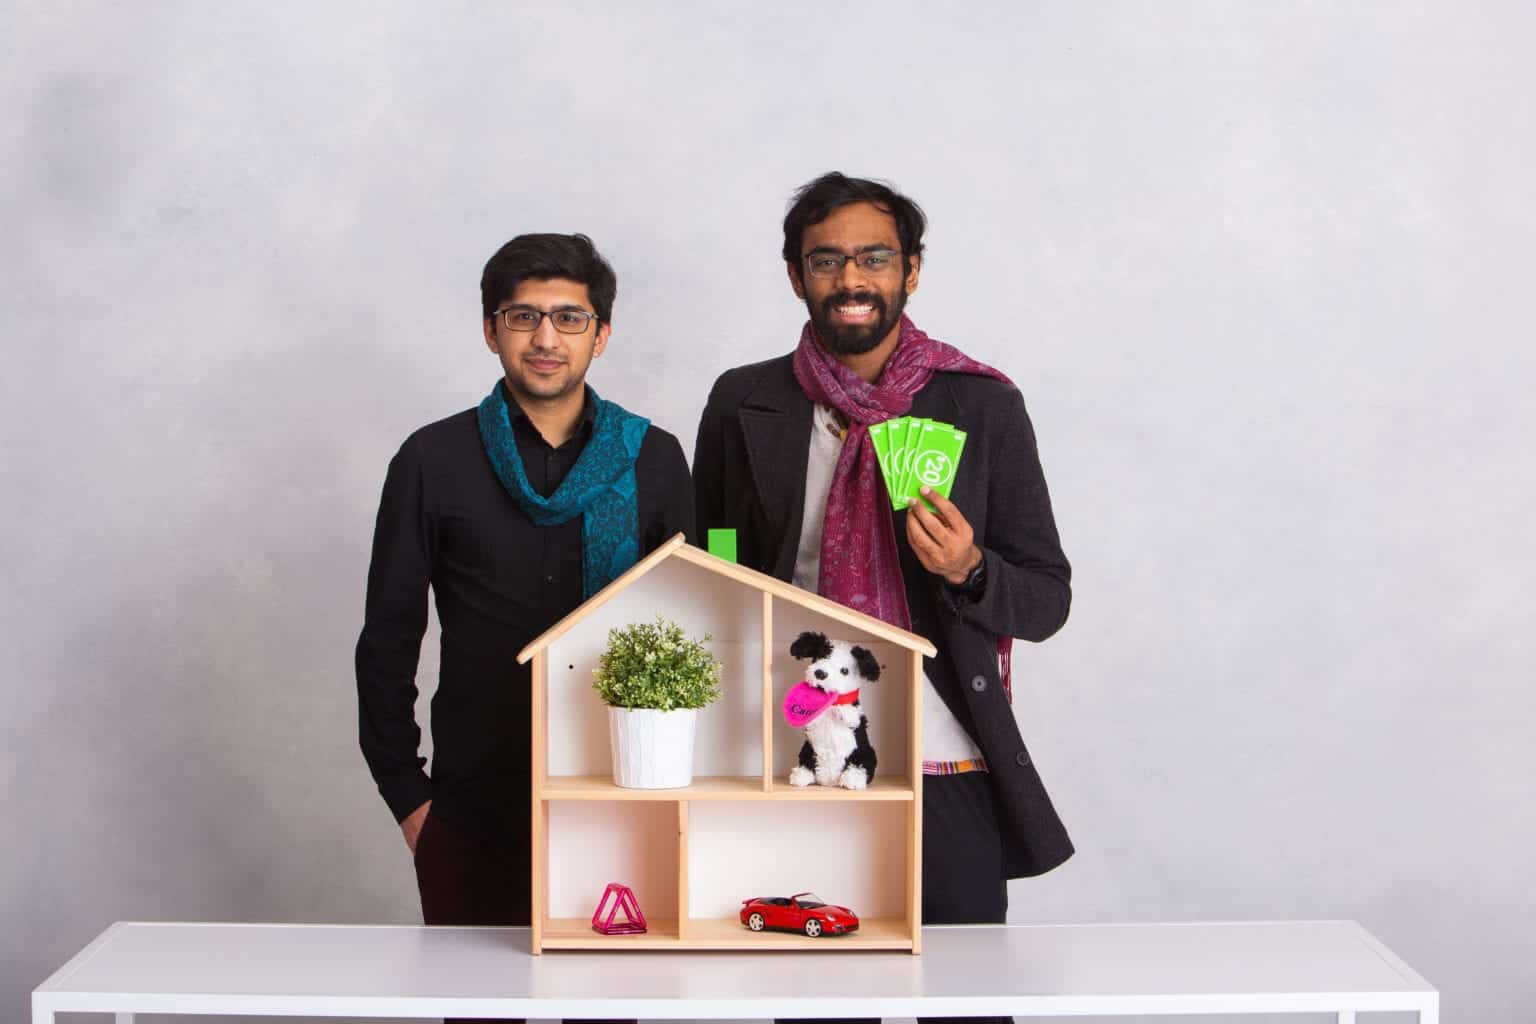 Rashid and Abhiroop standing in front of a model house